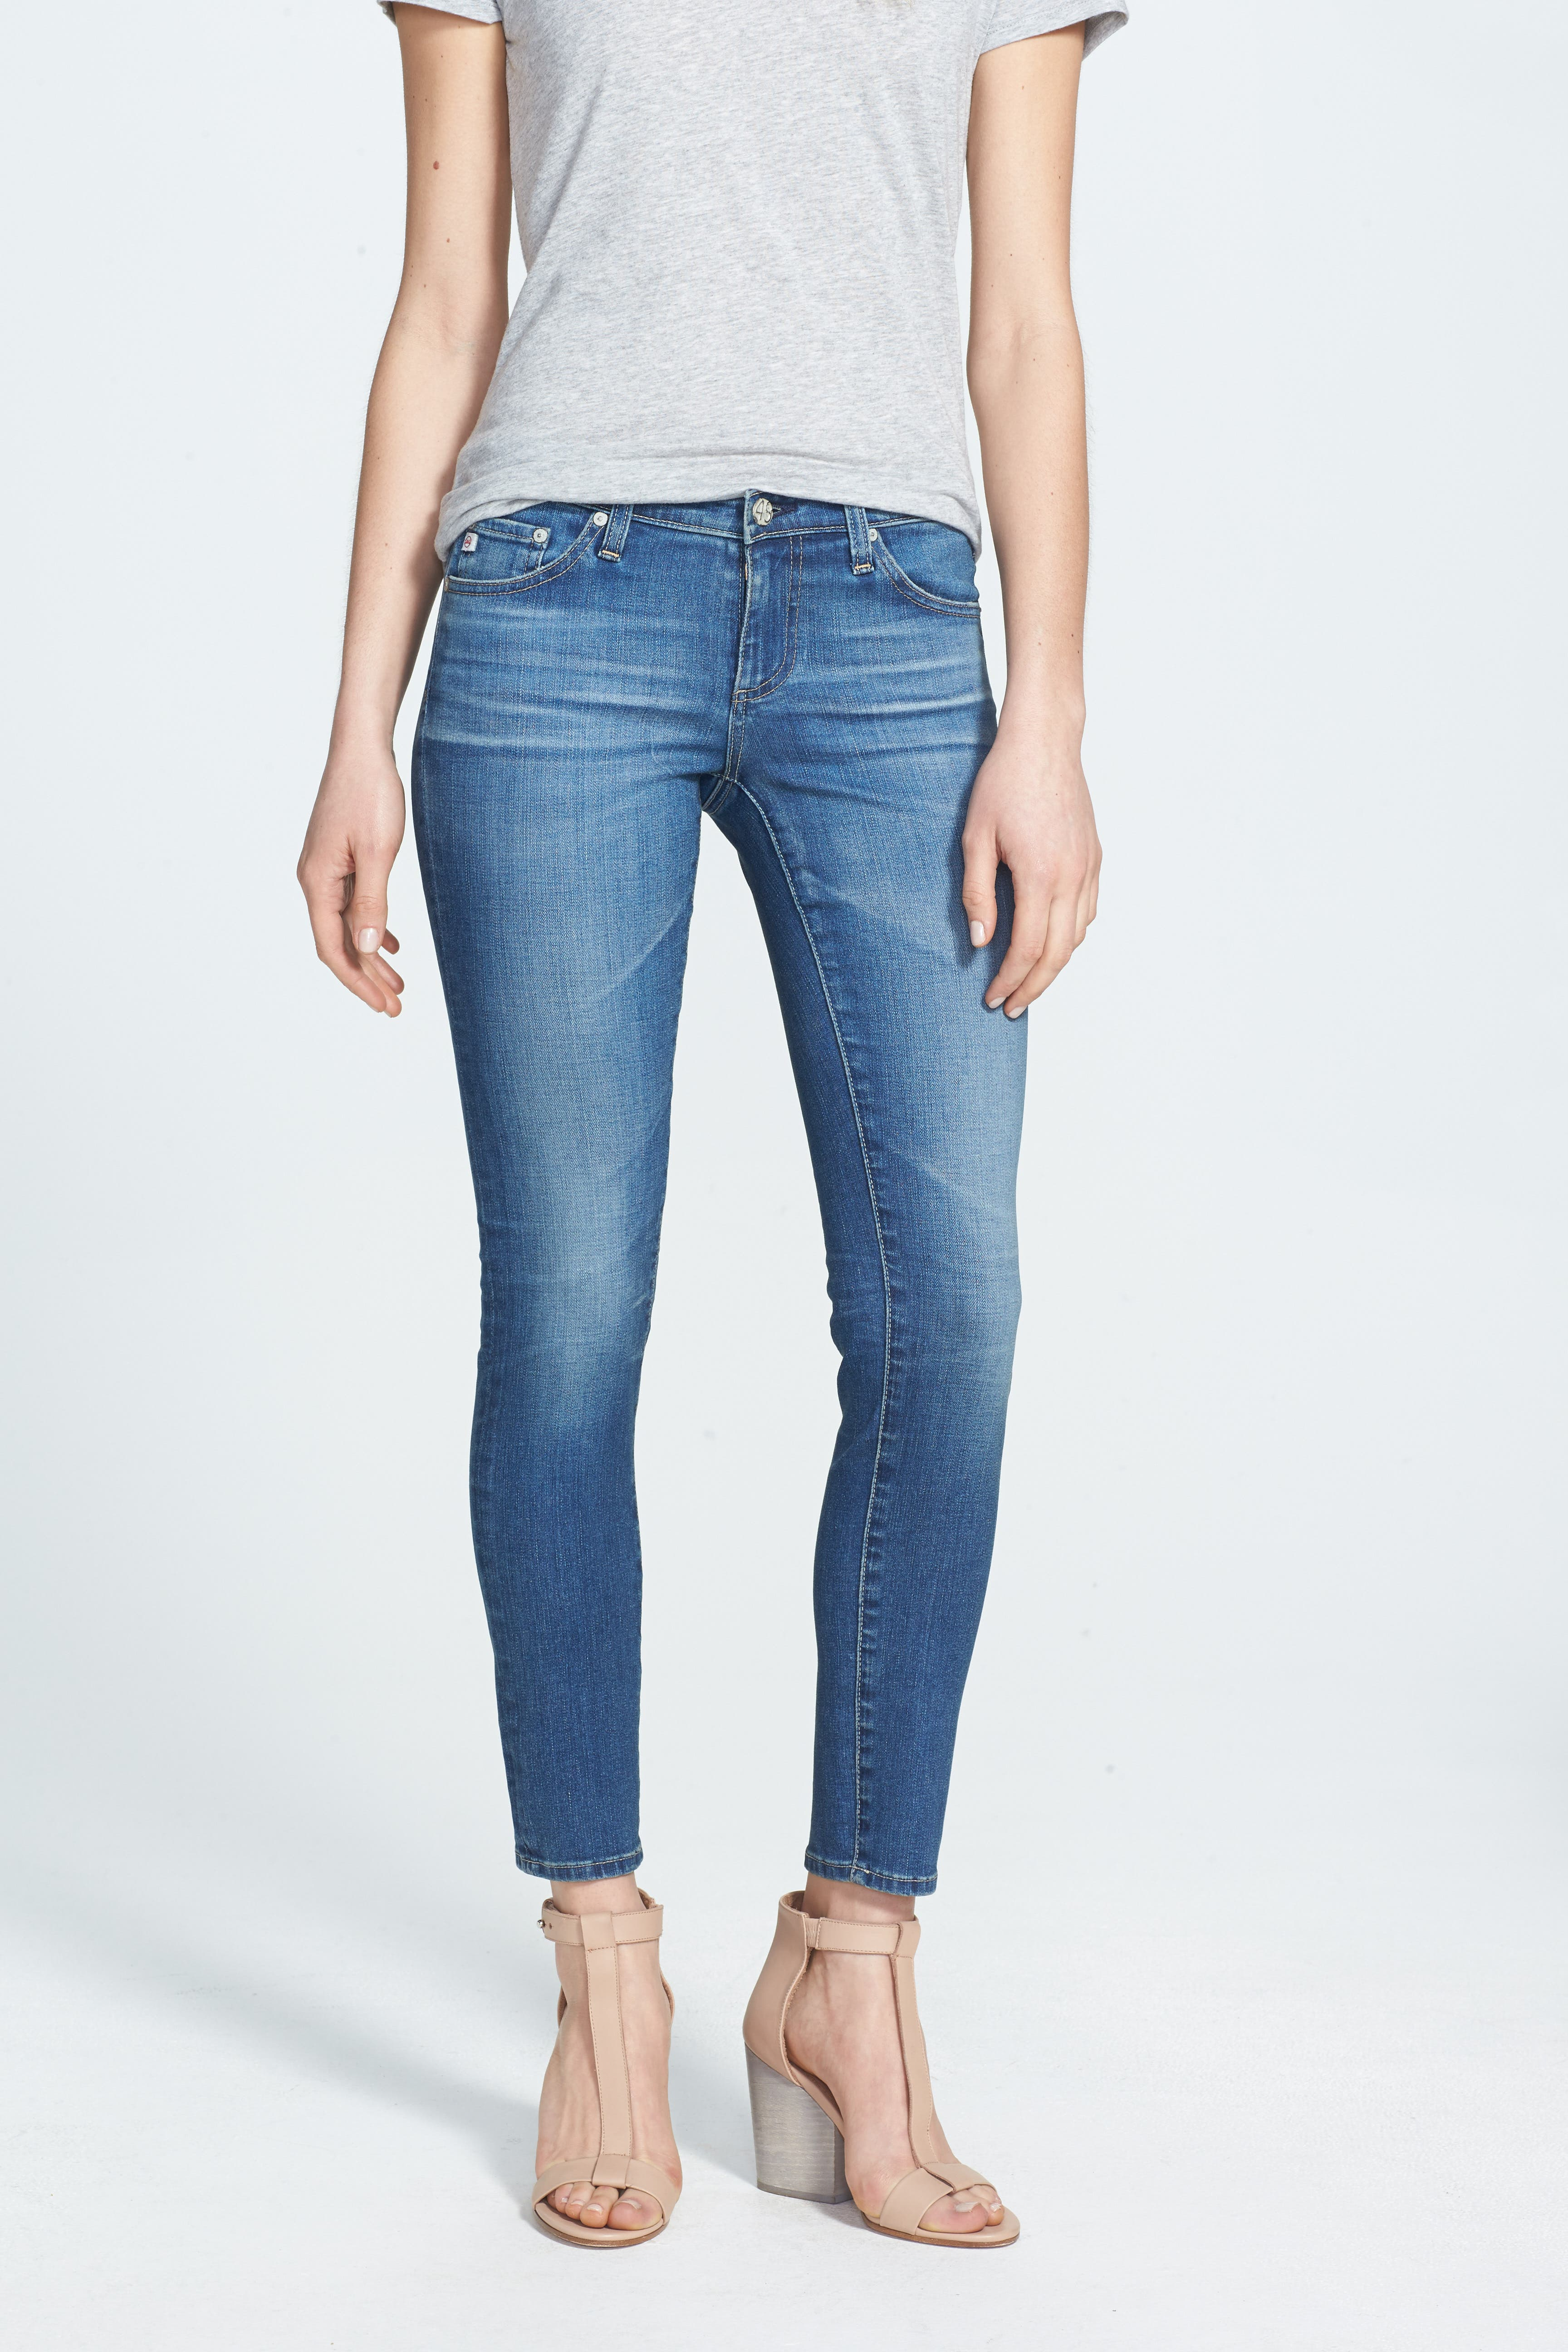 AG 'The Legging' Ankle Jeans, Main, color, 18 YEAR